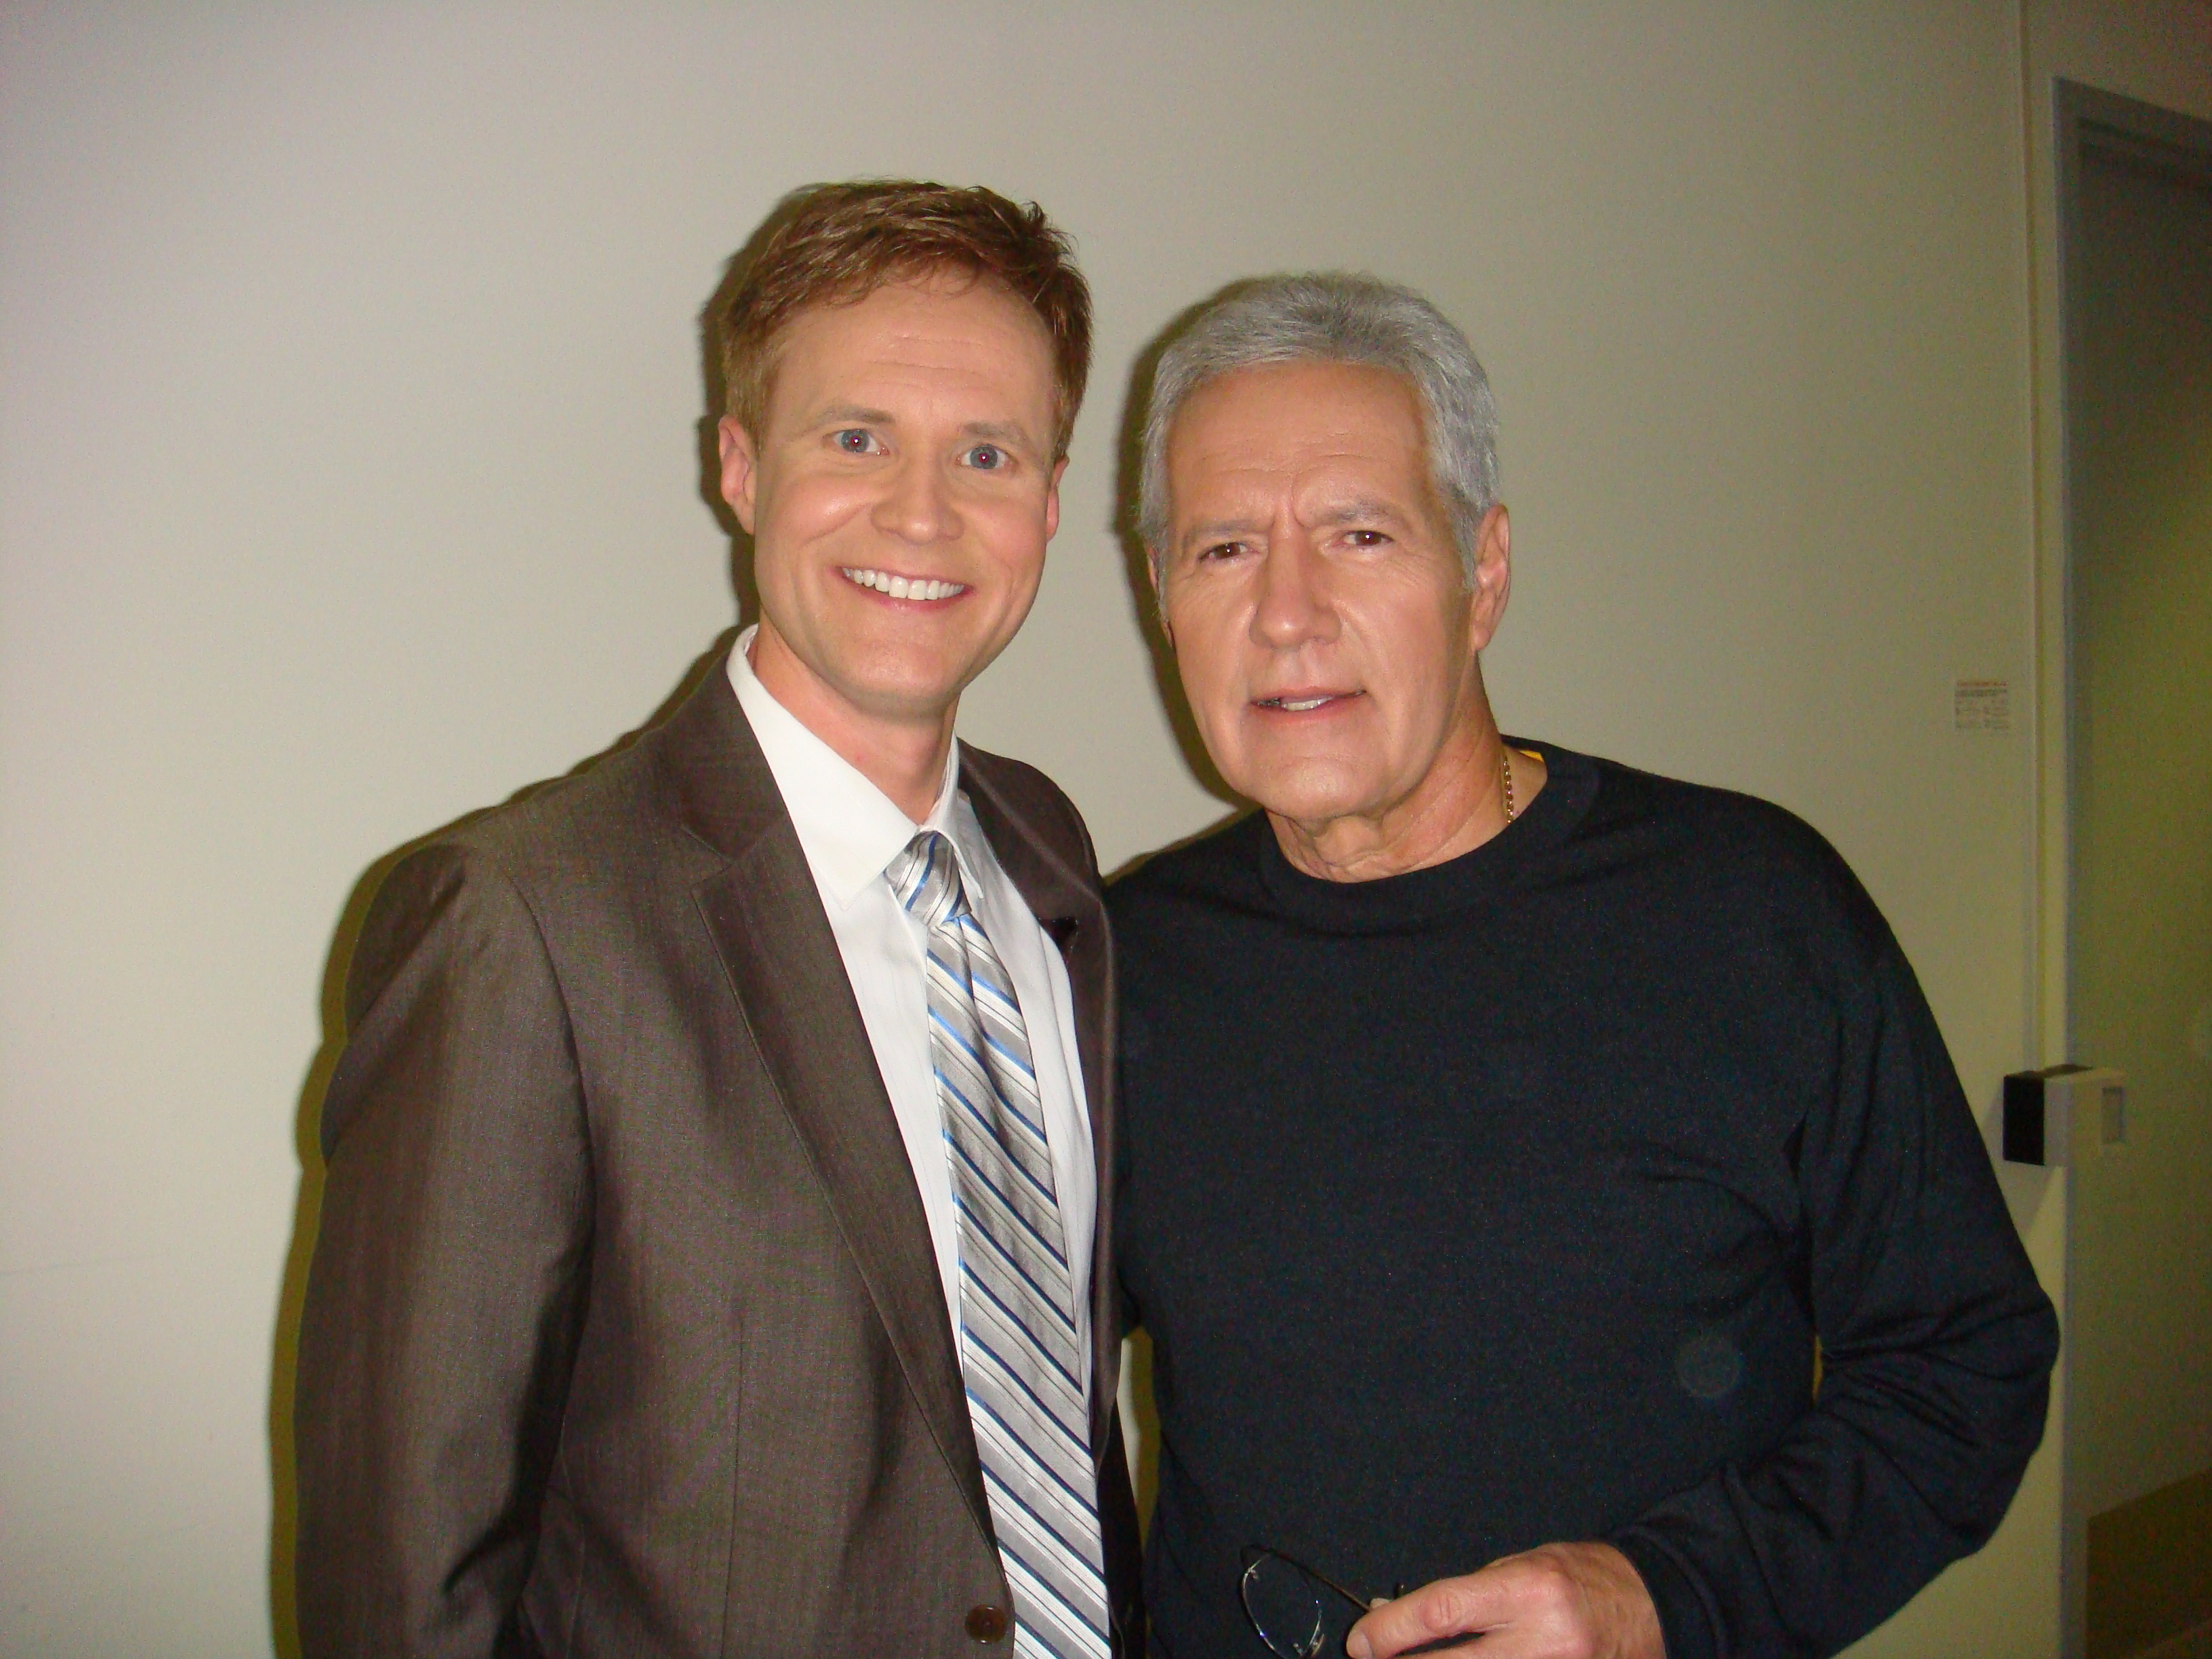 Todd and Mr. Trebek